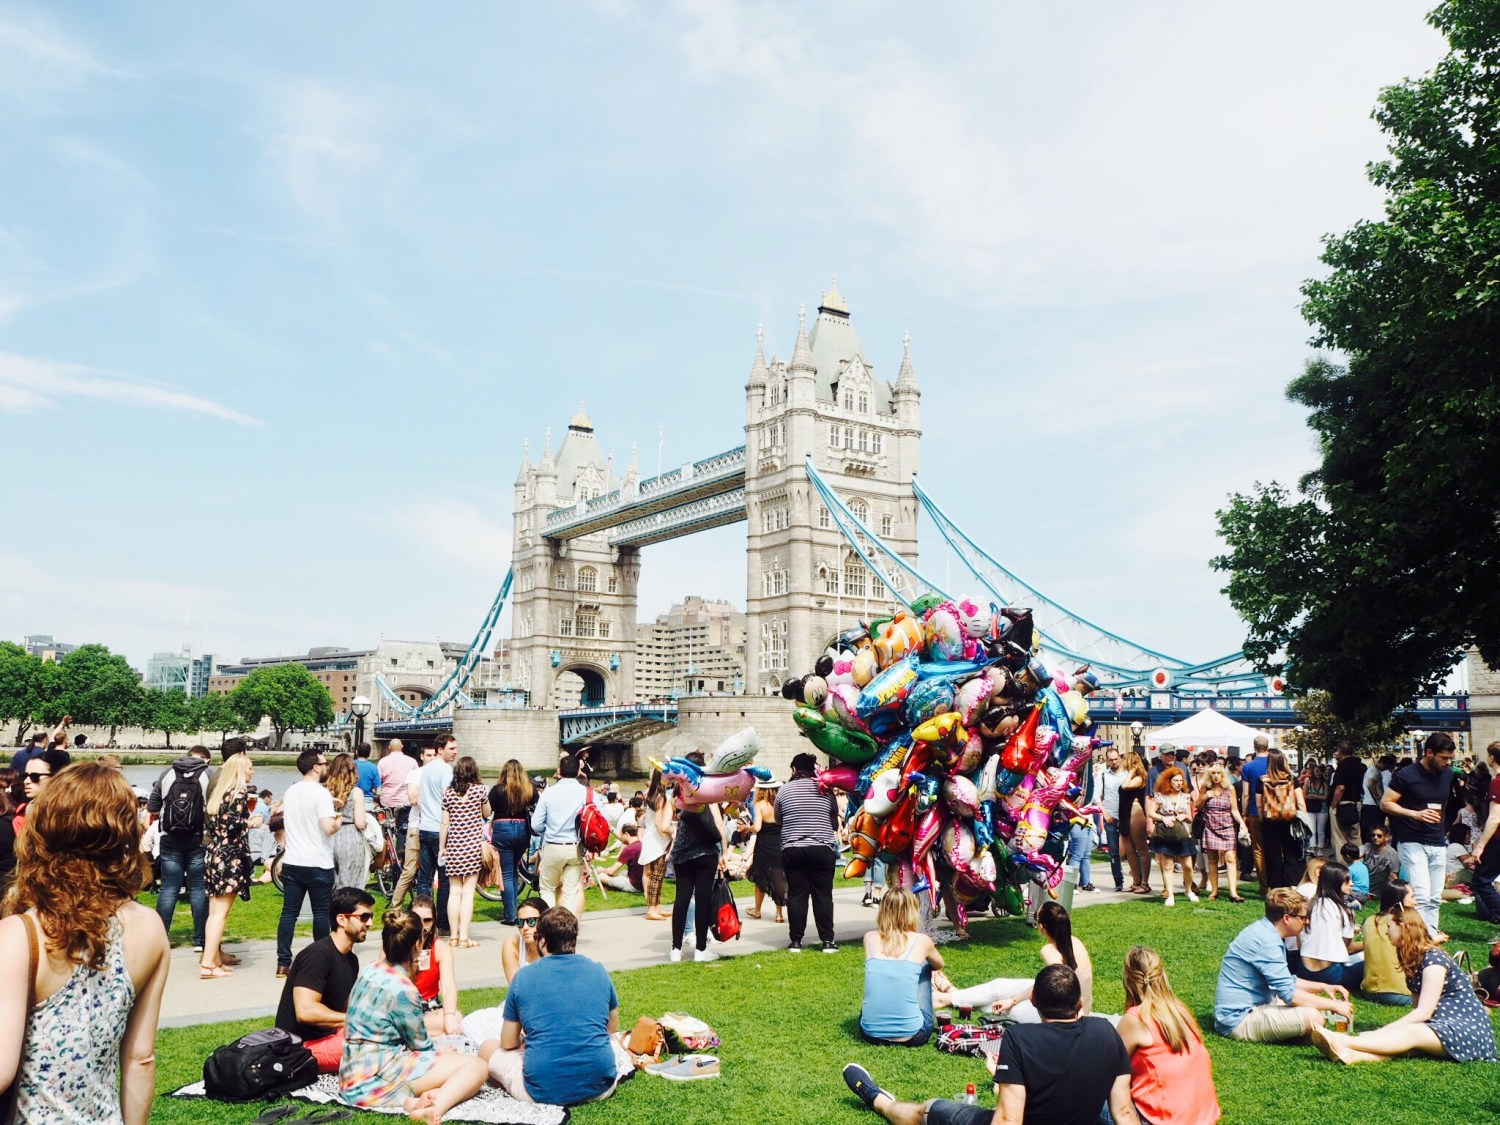 Group of people at Feria de Londres at Tower Bridge